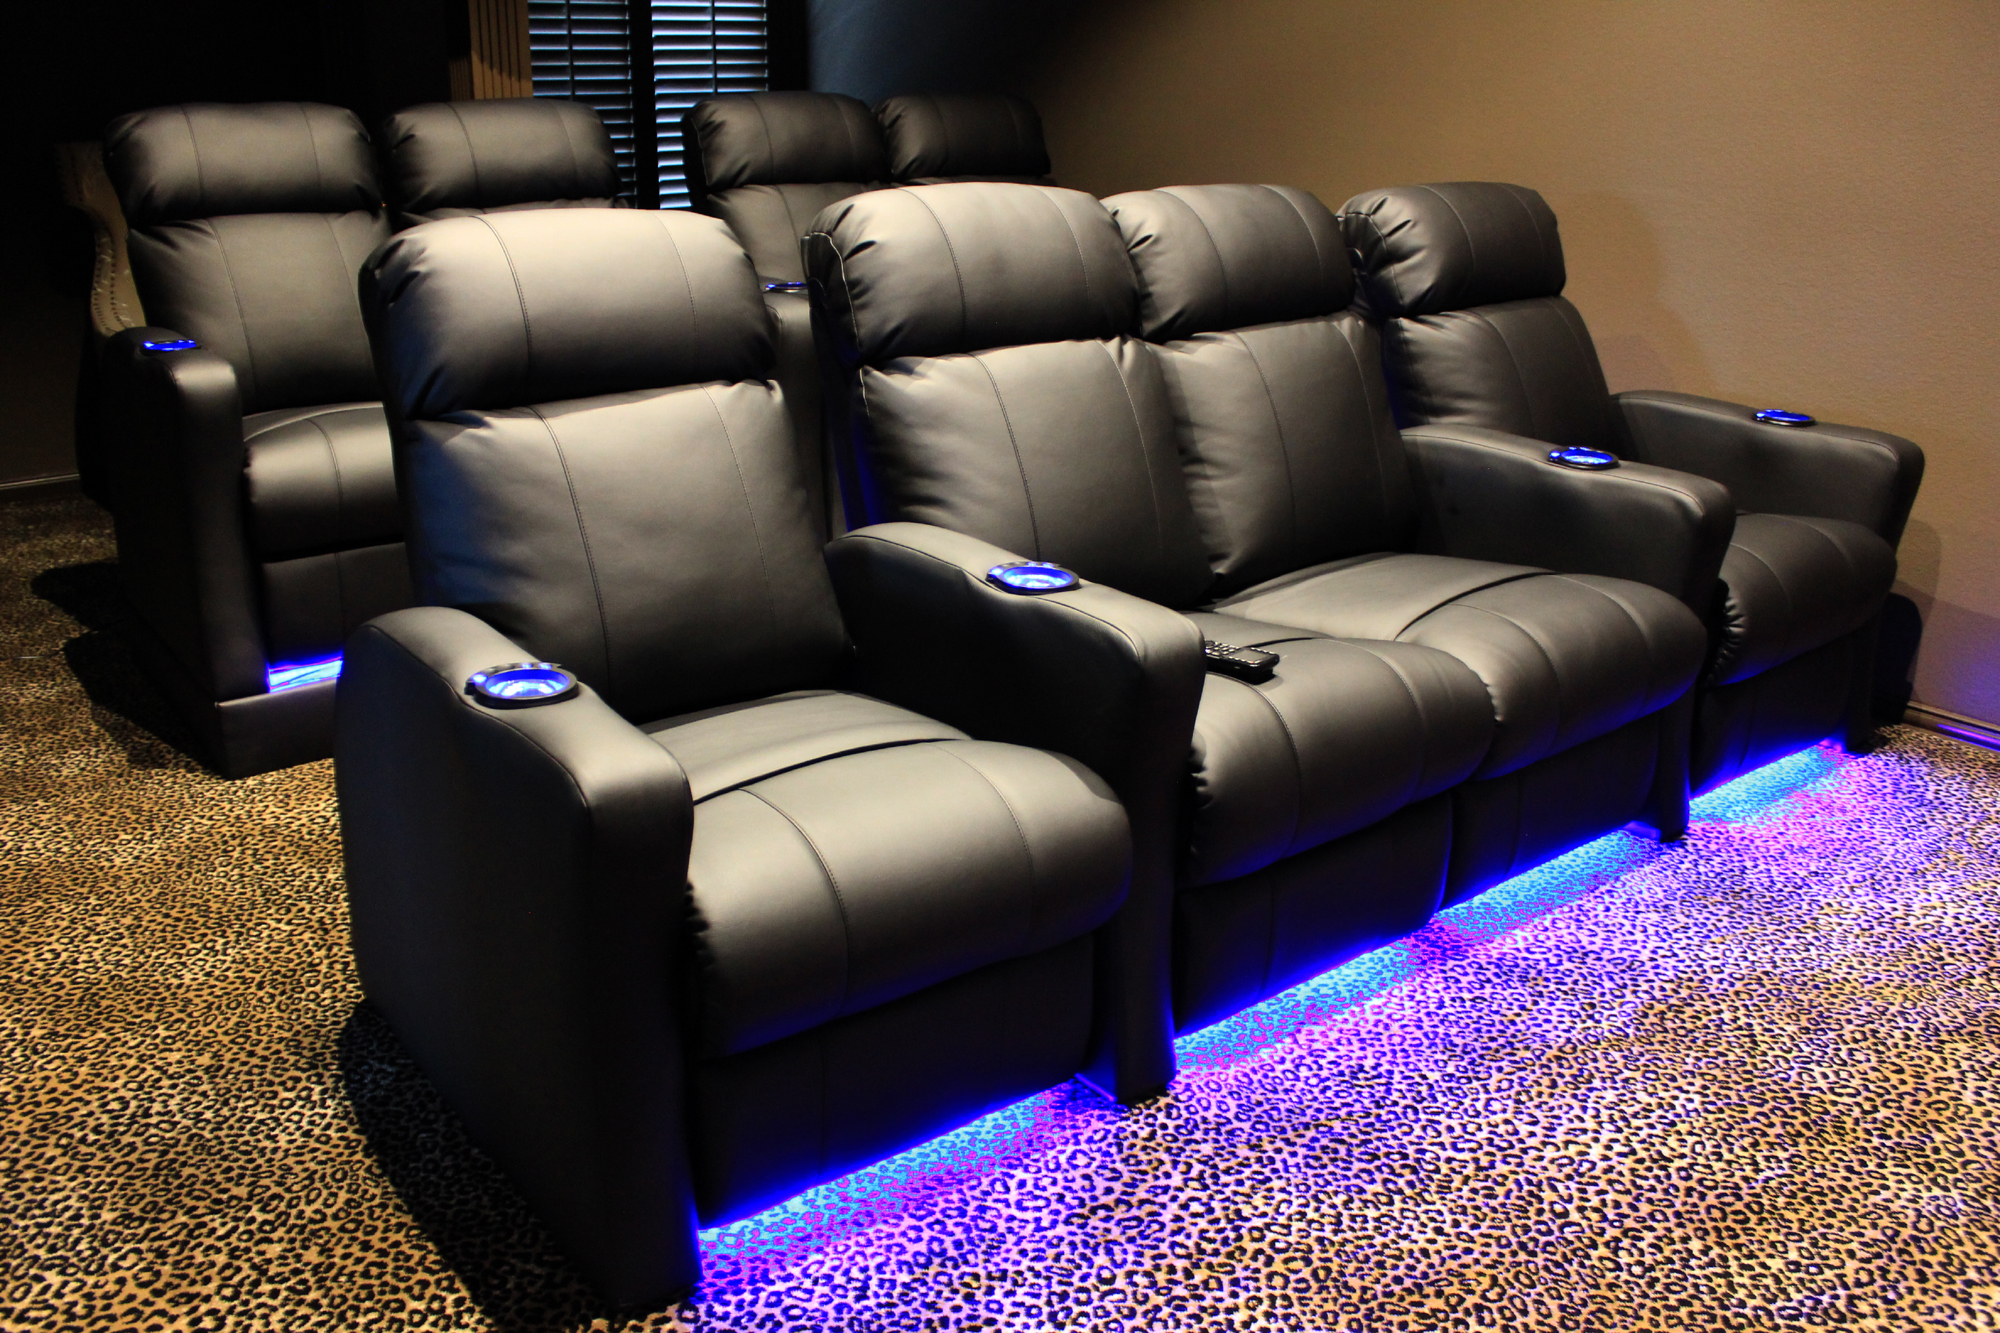 movie theaters with lounge chairs chair cushion cover theater built in riser and led kit mccabe 39s